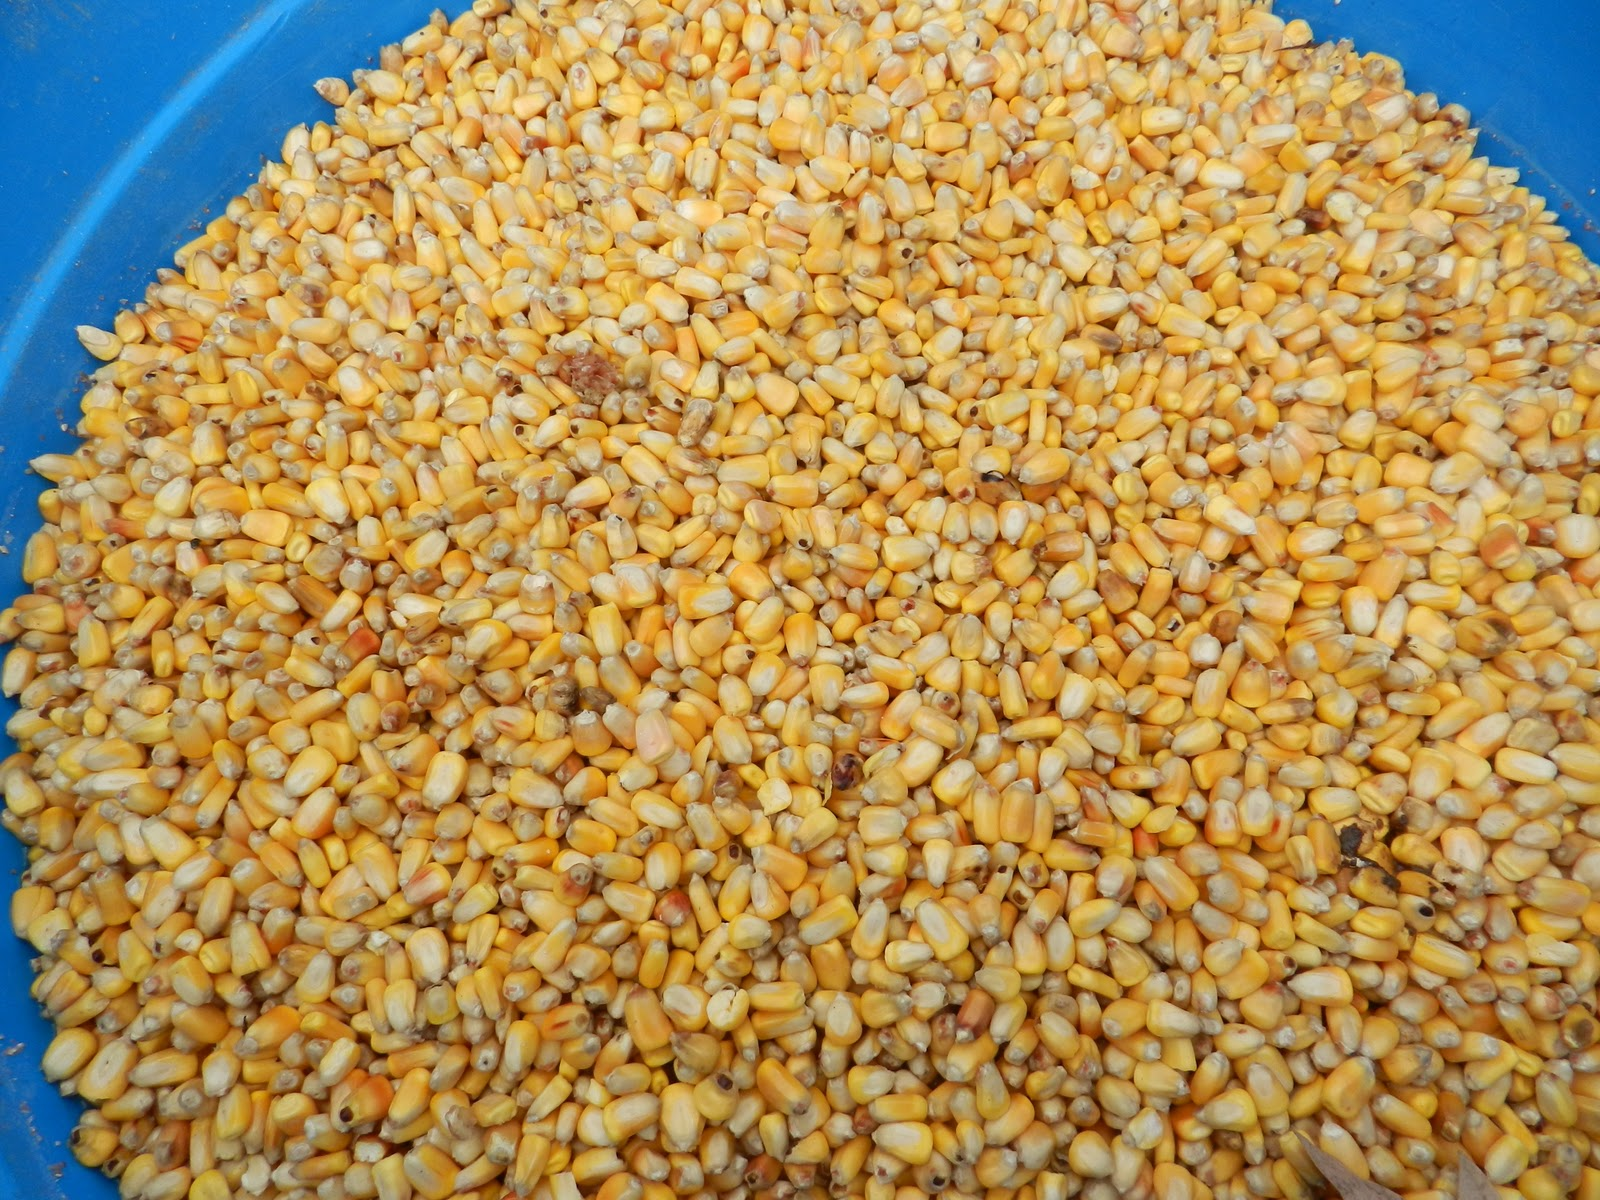 Soaking Corn for Livestock Feed